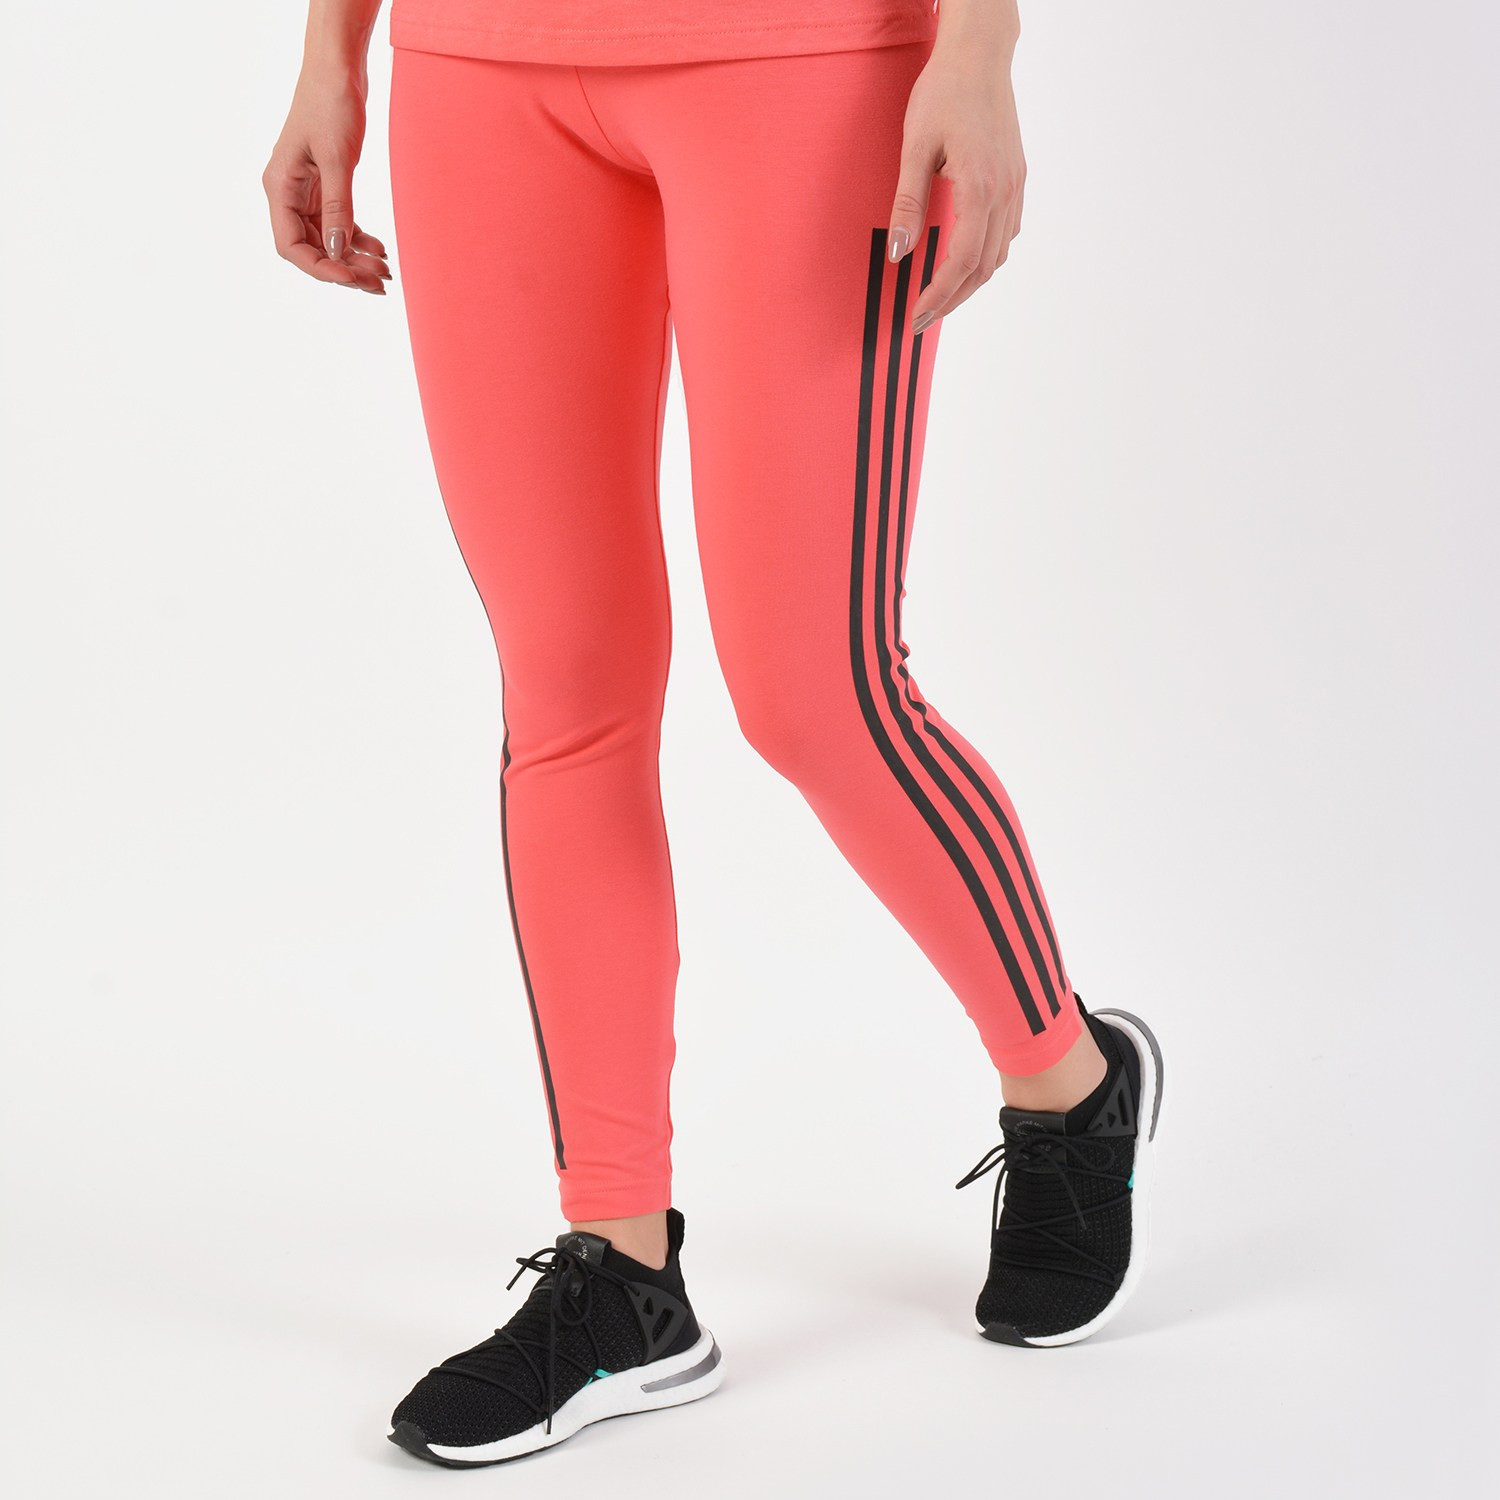 adidas Must Haves 3-Stripes Tights - Γυναικείο Κολάν (9000023307_37151)